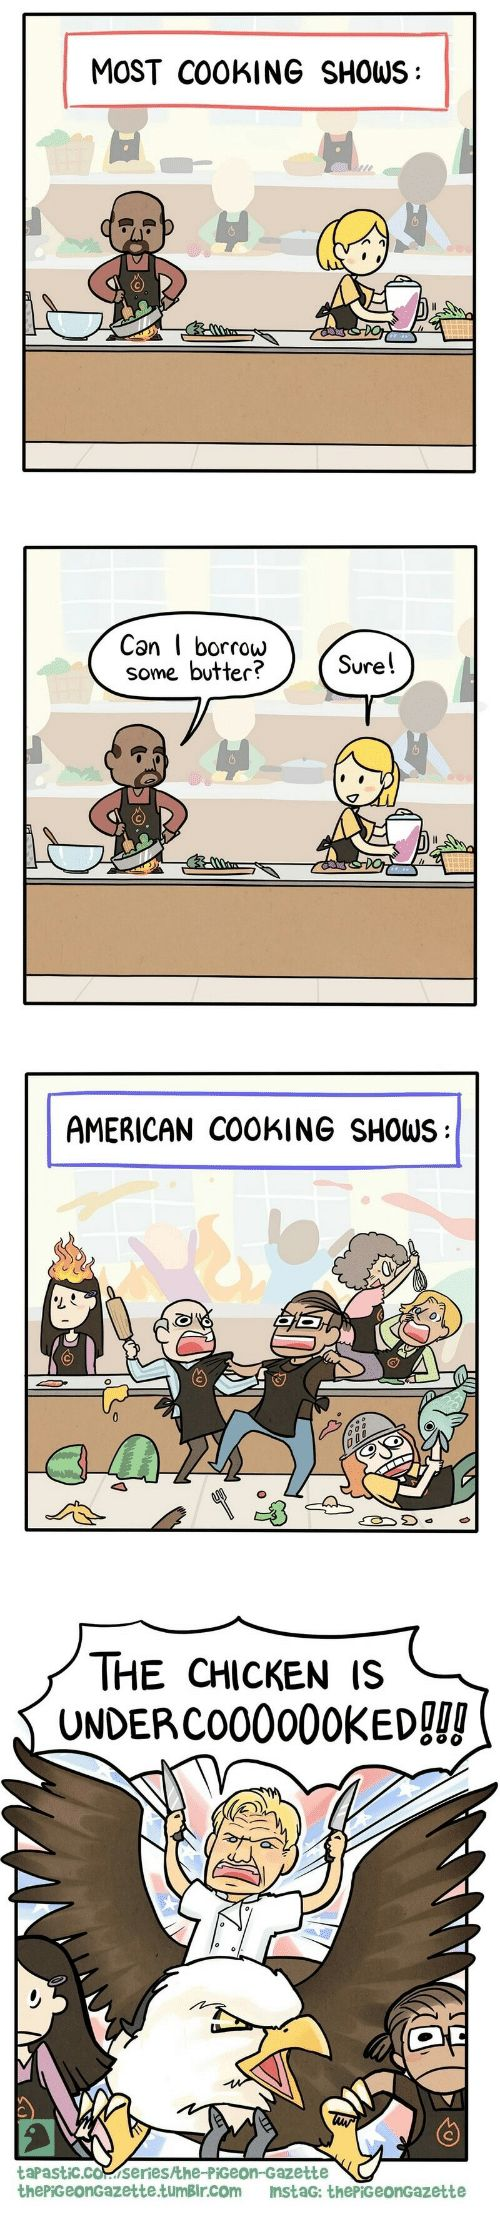 'murica!!!! P.S.: I know Gordon Ramsay's Scottish, it's just that he's so ubiquitous now in American cooking competitions. Also not trying to downplay his international culinary achievements!